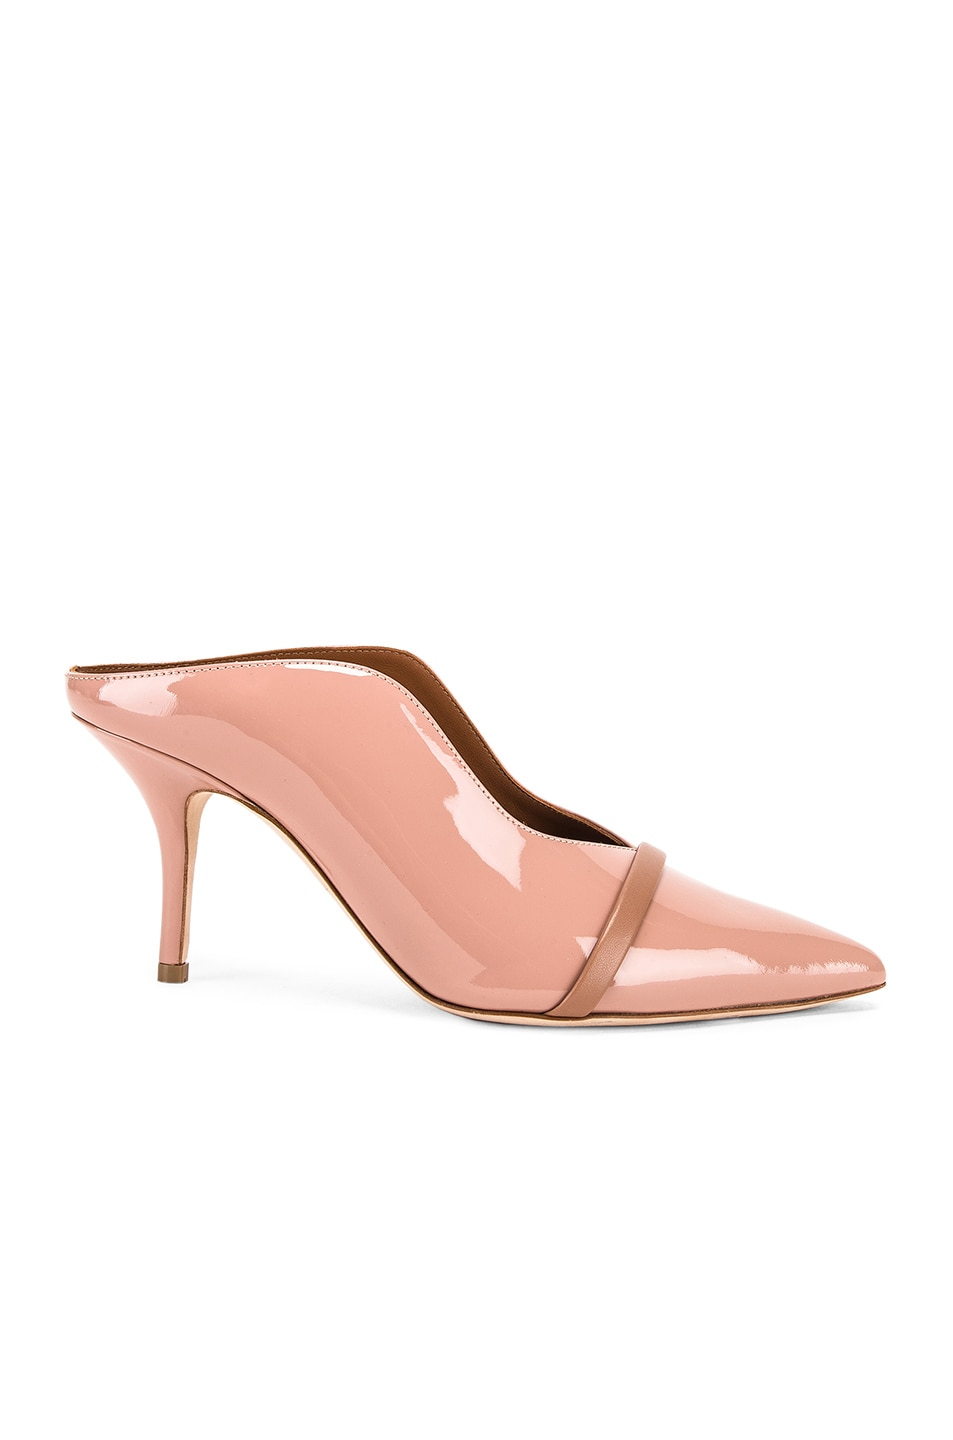 Image 1 of Malone Souliers Constance MS 70 Heel in Nude